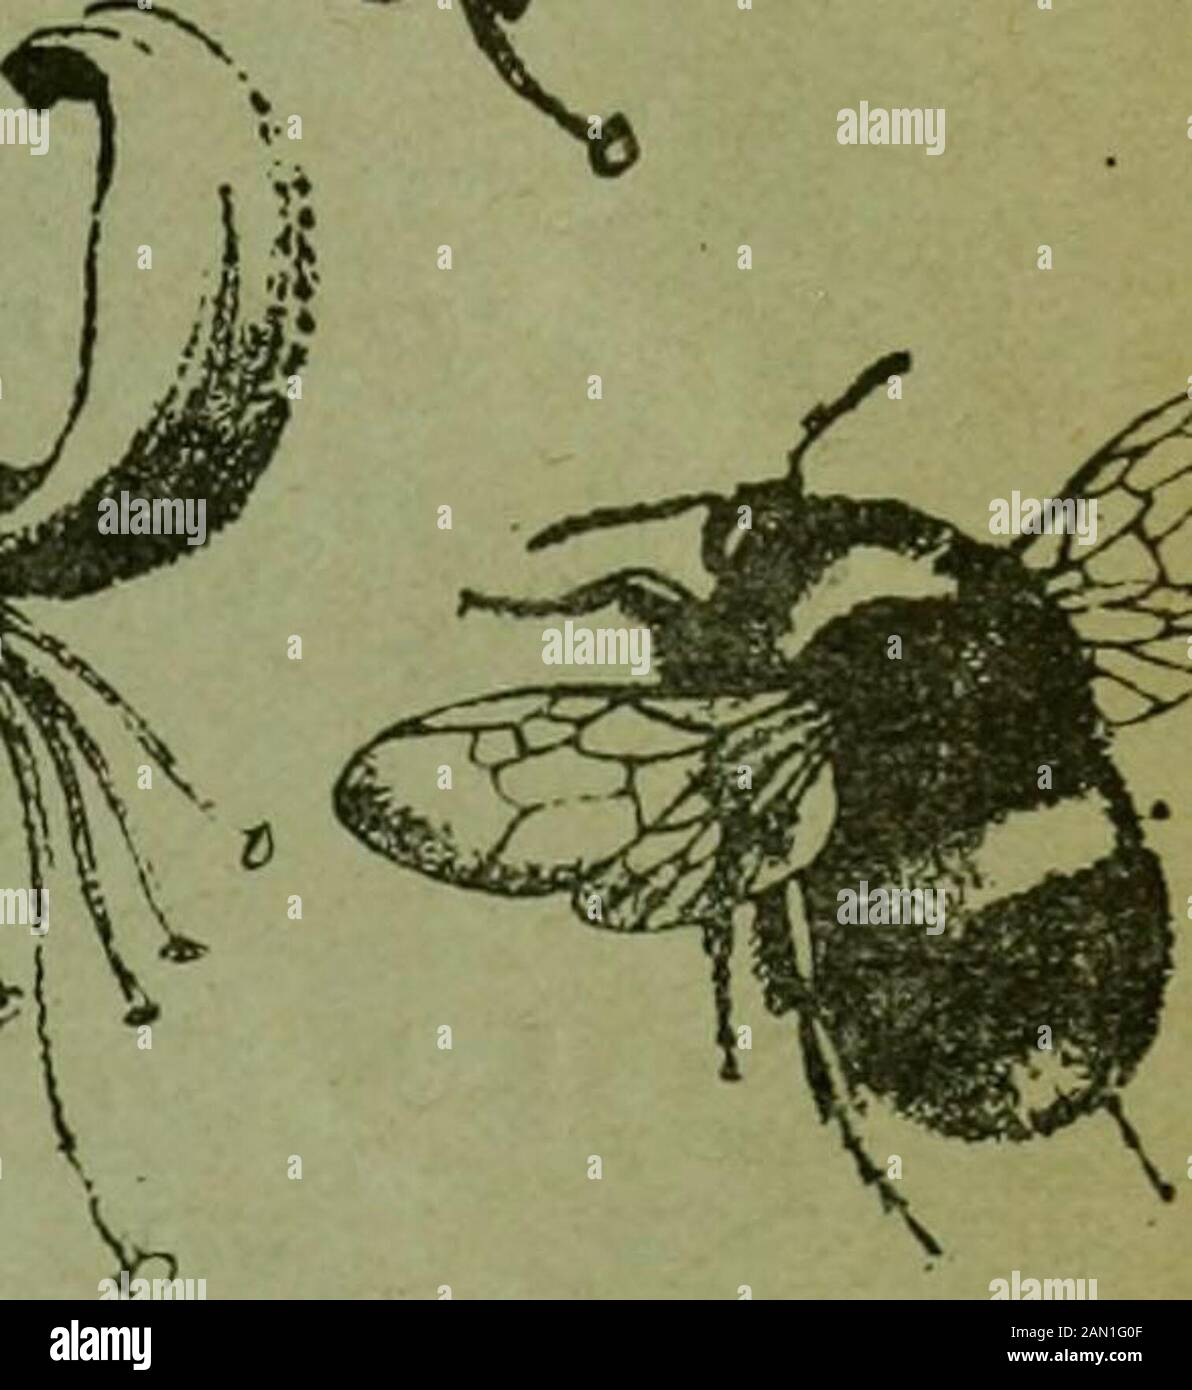 The Entomologist's record and journal of variation . THE ENTOMOLOGISTS RECOF AND JOURNAL OF VARIATIC Edited hv Richard S. BAGNALL., f.l.s., f.e.s. 1 T. A. CHAPMAN, m.d.,f.z.s., T. HUDSON BE ARE, B.SC, F.E.8., I.a.S.K. George T. BETHUNB-BAKER, p.z.s., f.l.s., f.e.s.m. burr, d.sc, f.z.s., f.i..s., f.k.s.(Rbv.) C. R. N. BURROWS, f.e.s. Jas. E. COLLIN, F.K.s.H. St. J. K. DONISTHORP]F.z.a.,Alfred SICH, f.e.s.J. R. le B. TOMLIN, M.A., F.BGeorge WHEELER, M.A., F and Hknry J. TEtliti Stock Photo